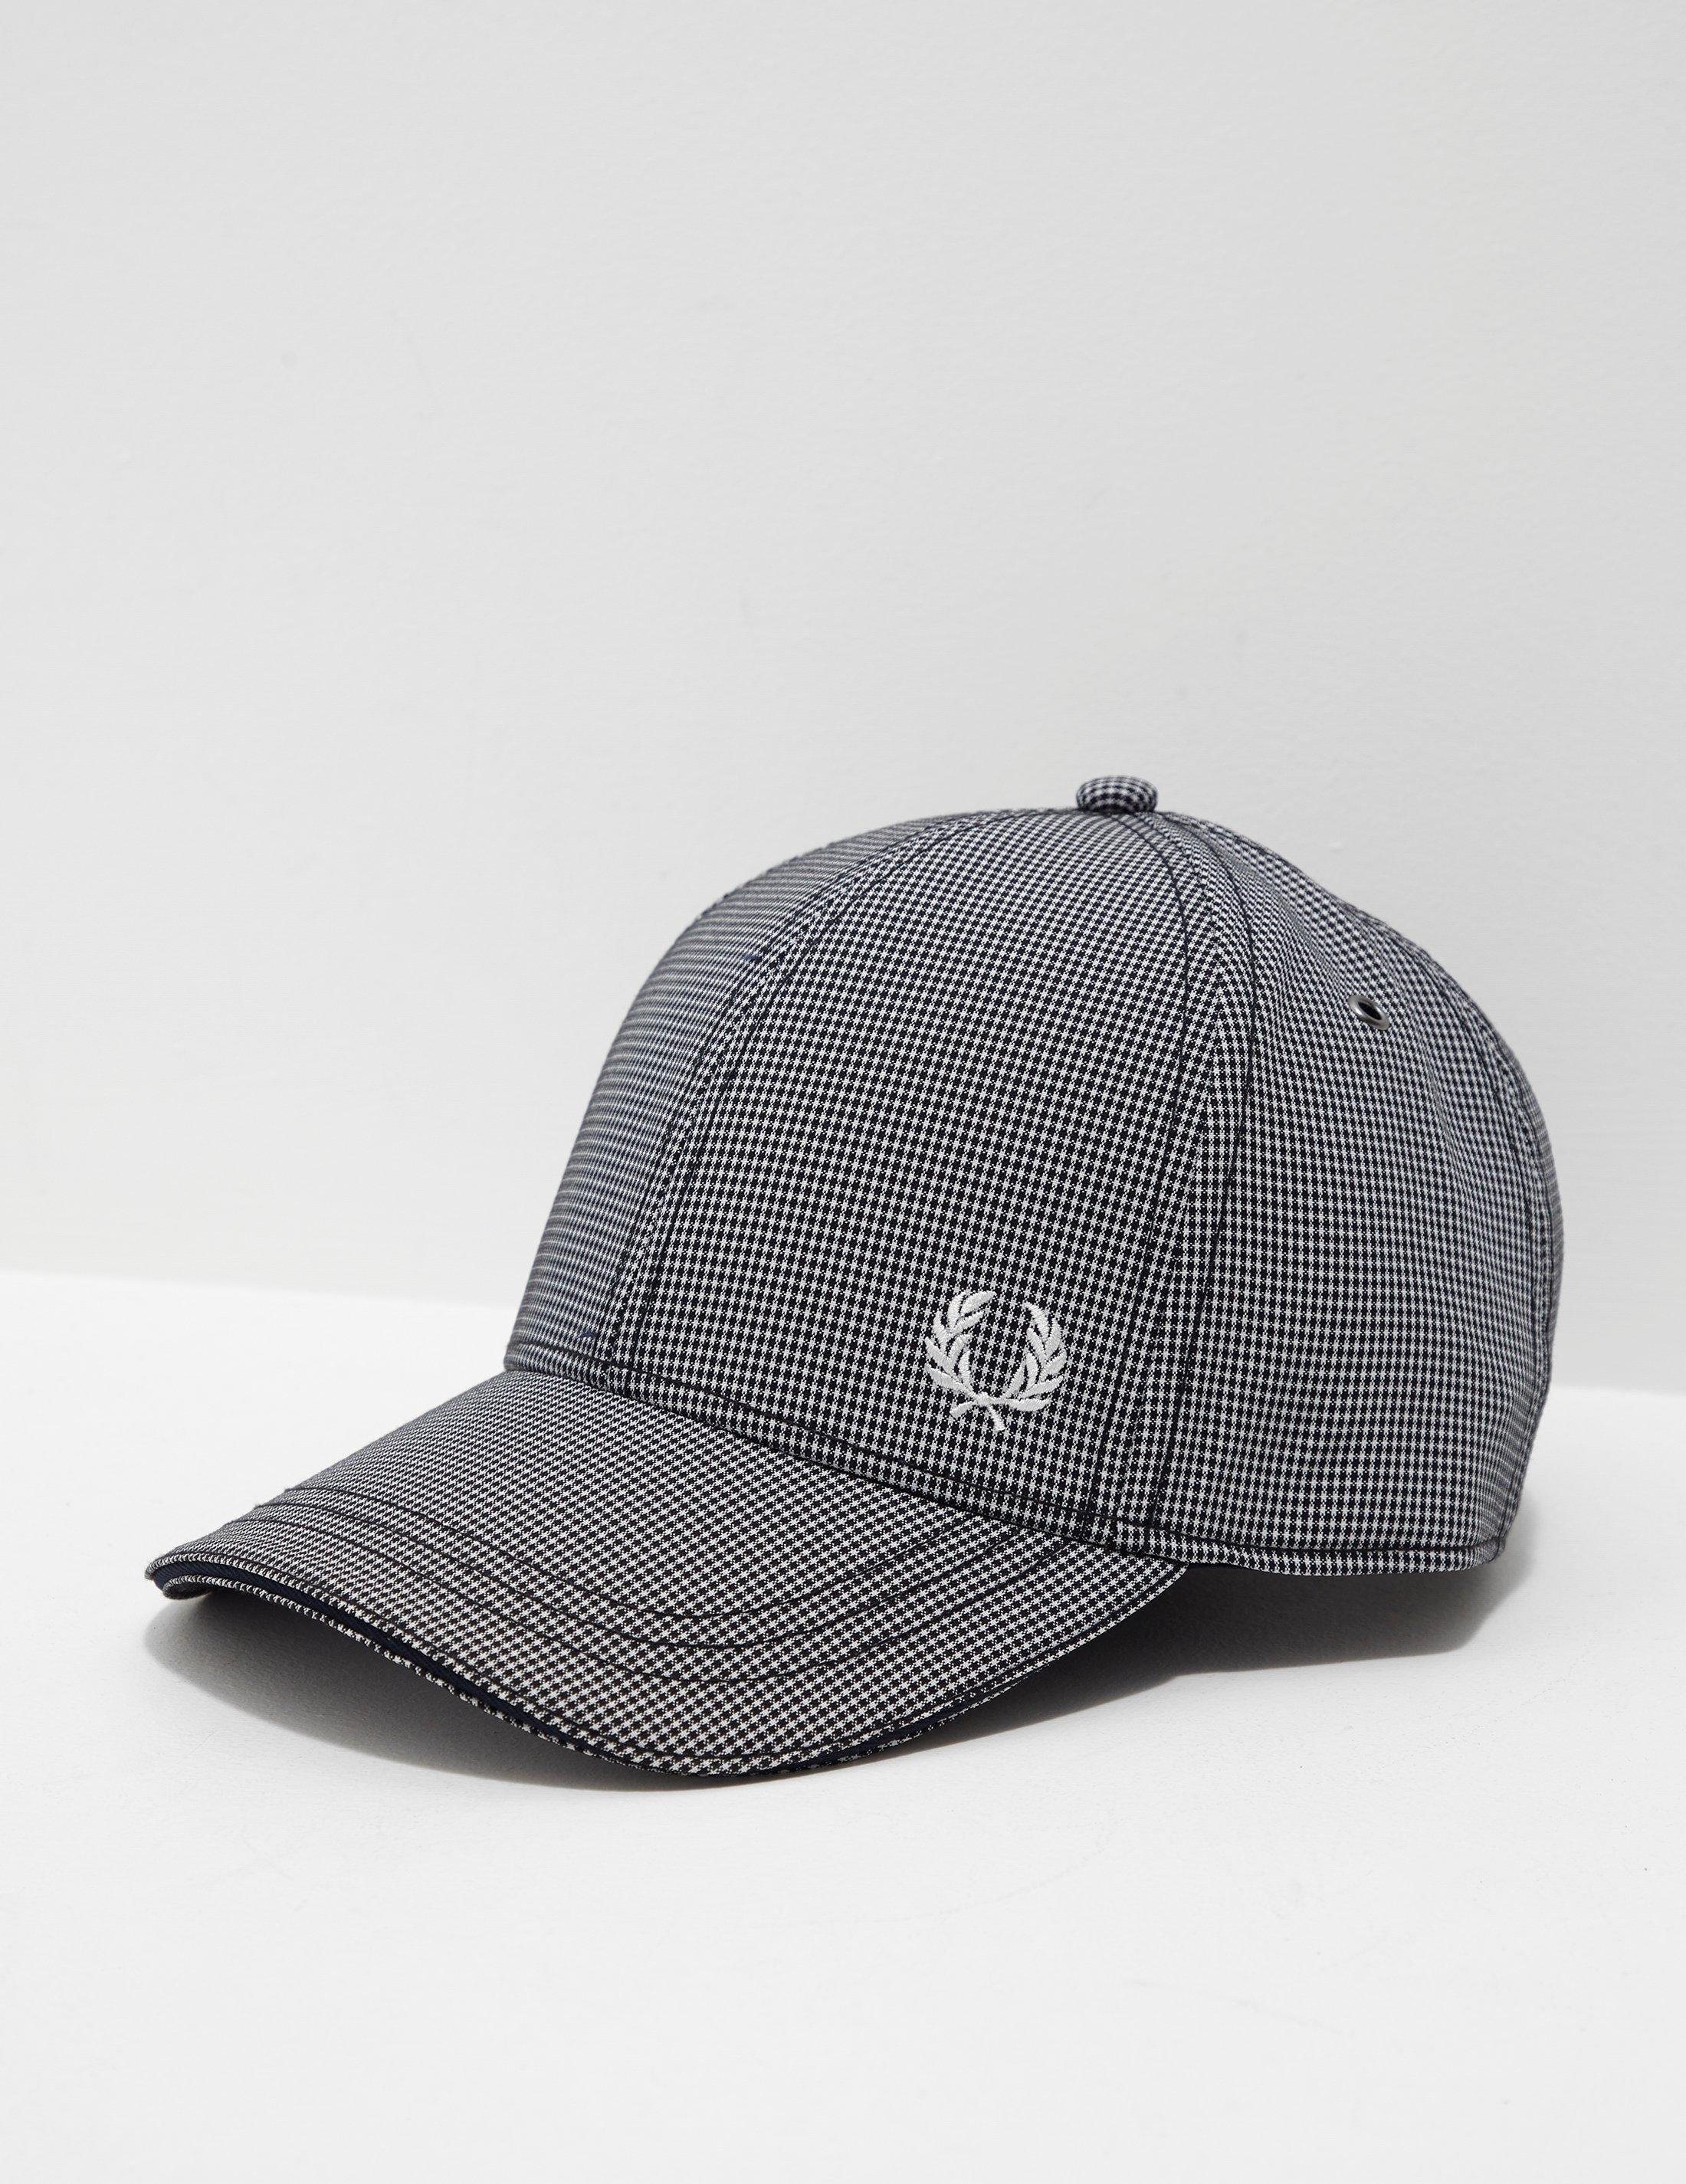 1deb59fde09 Lyst - Fred Perry Mens Gingham Cap Navy Blue in Blue for Men